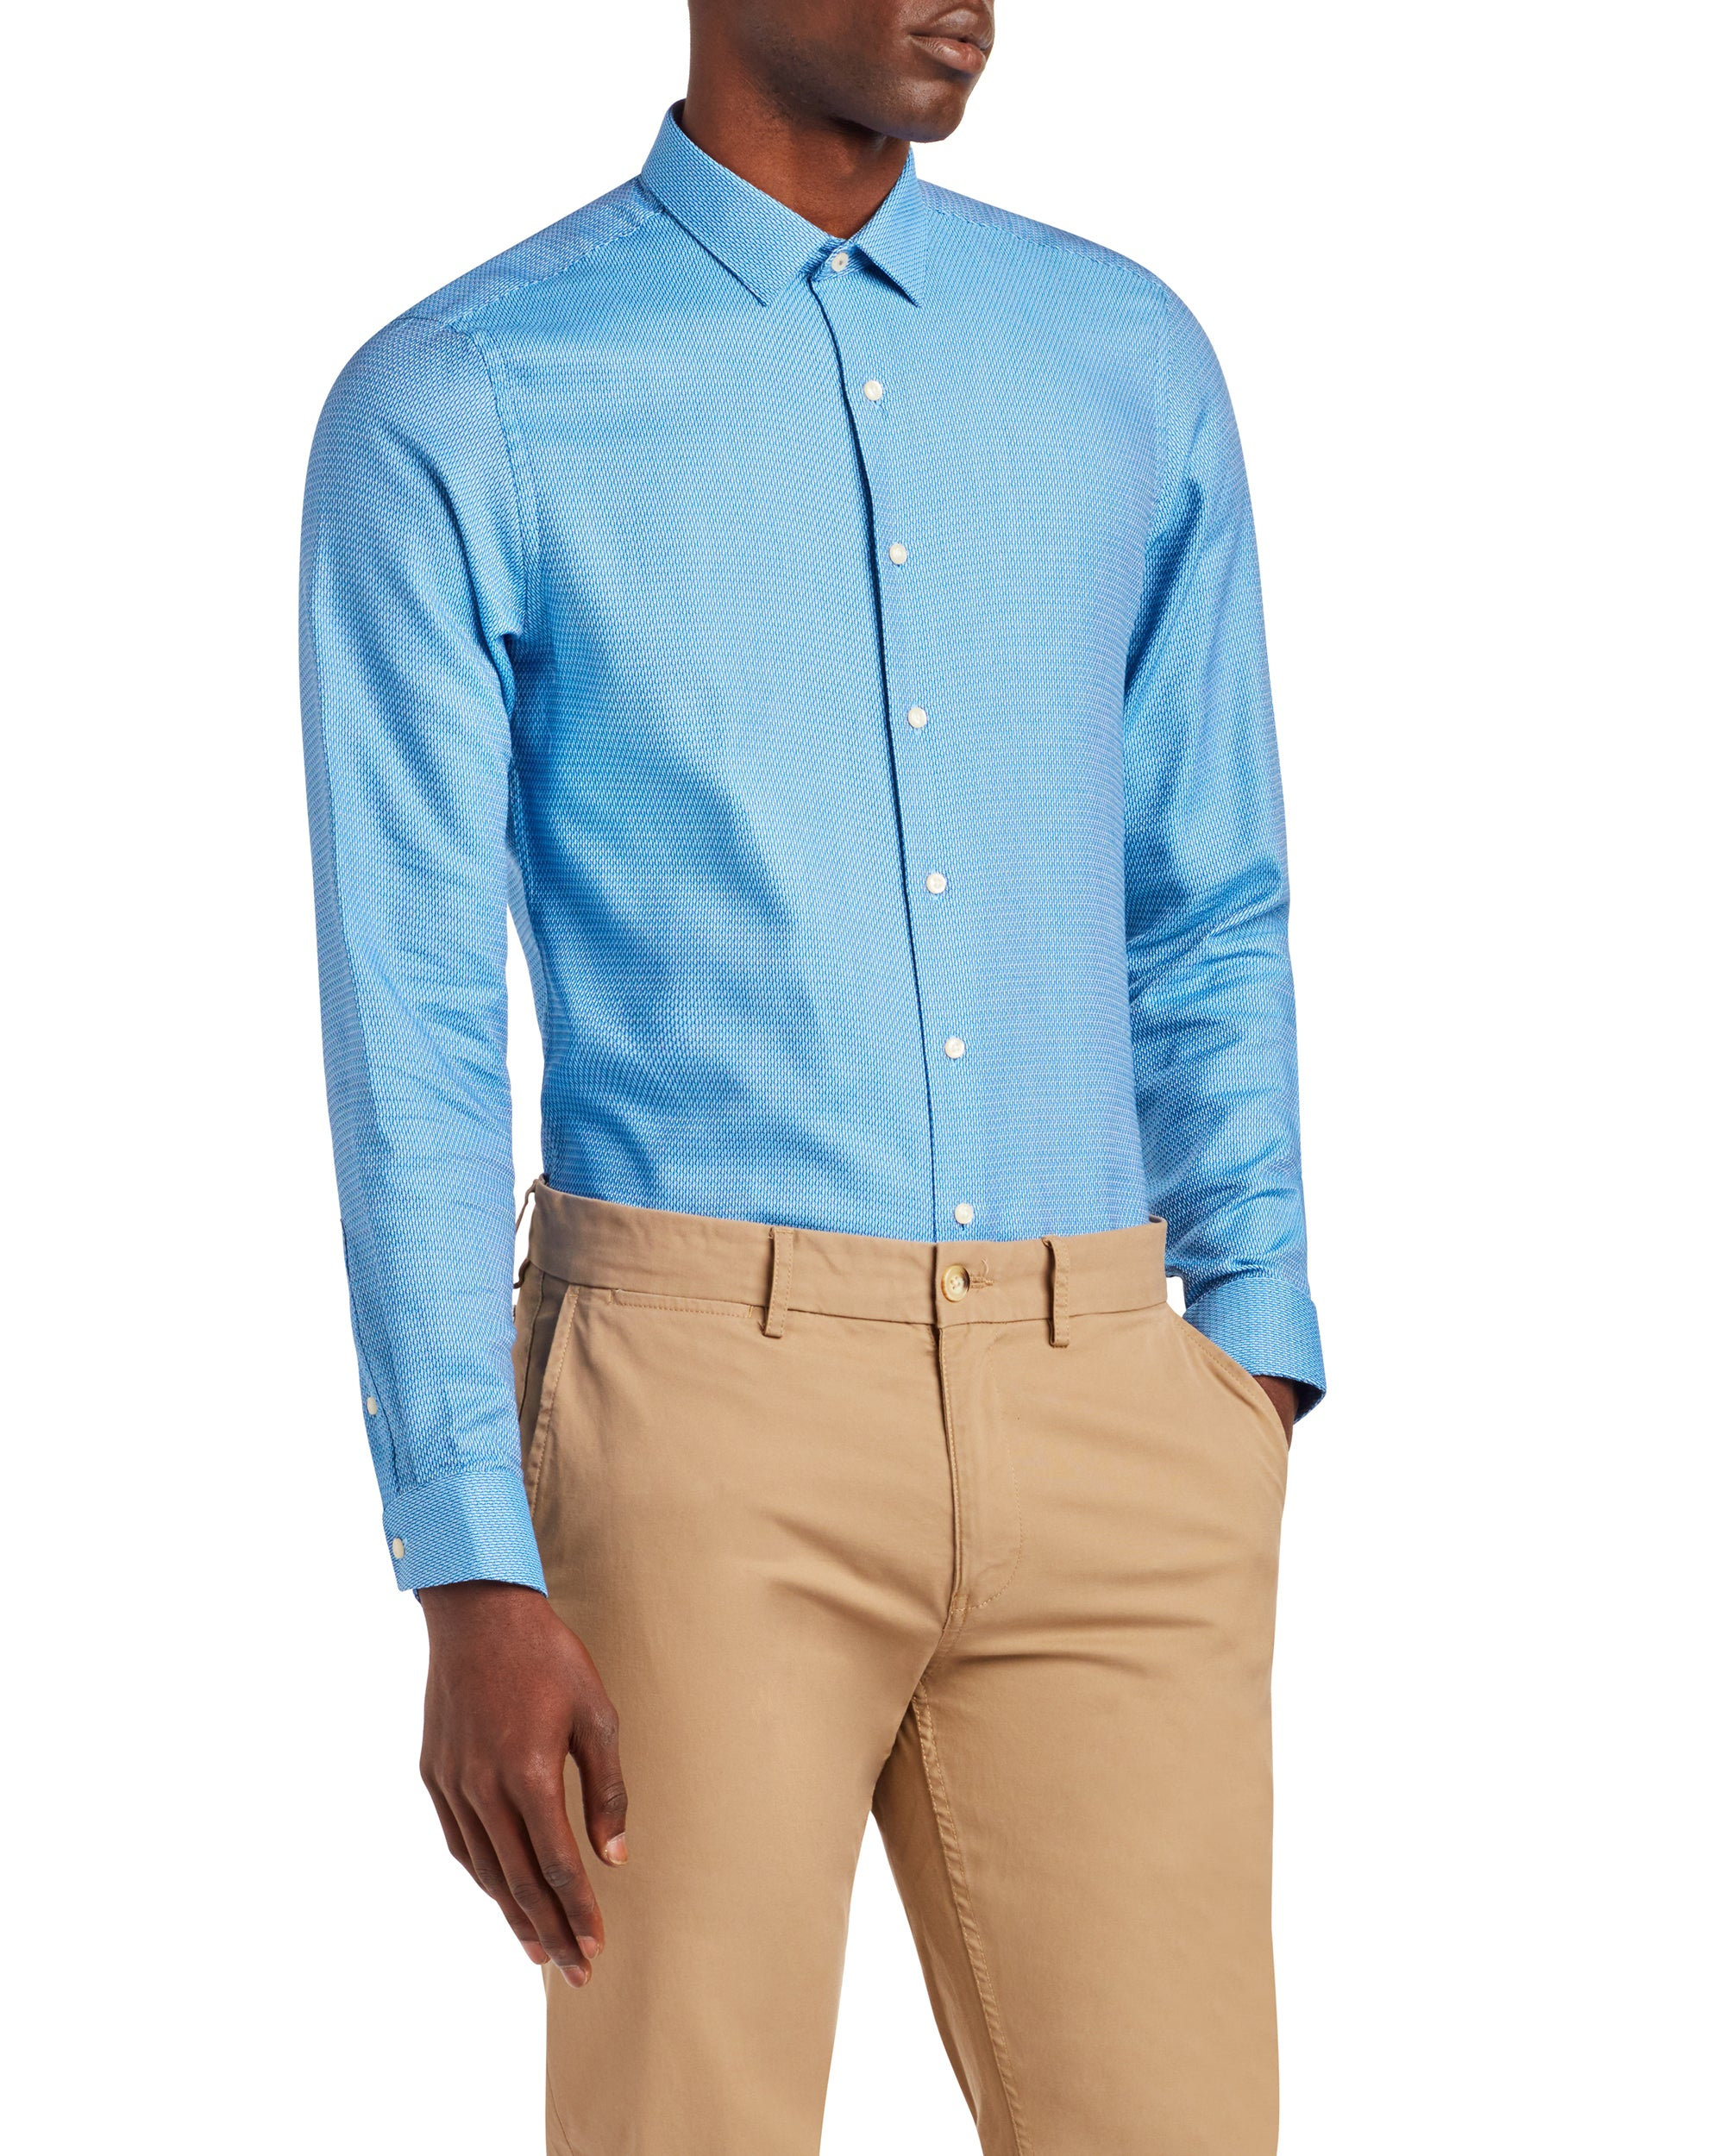 Textured Unsolid Solid Skinny Fit Dress Shirt - Blue